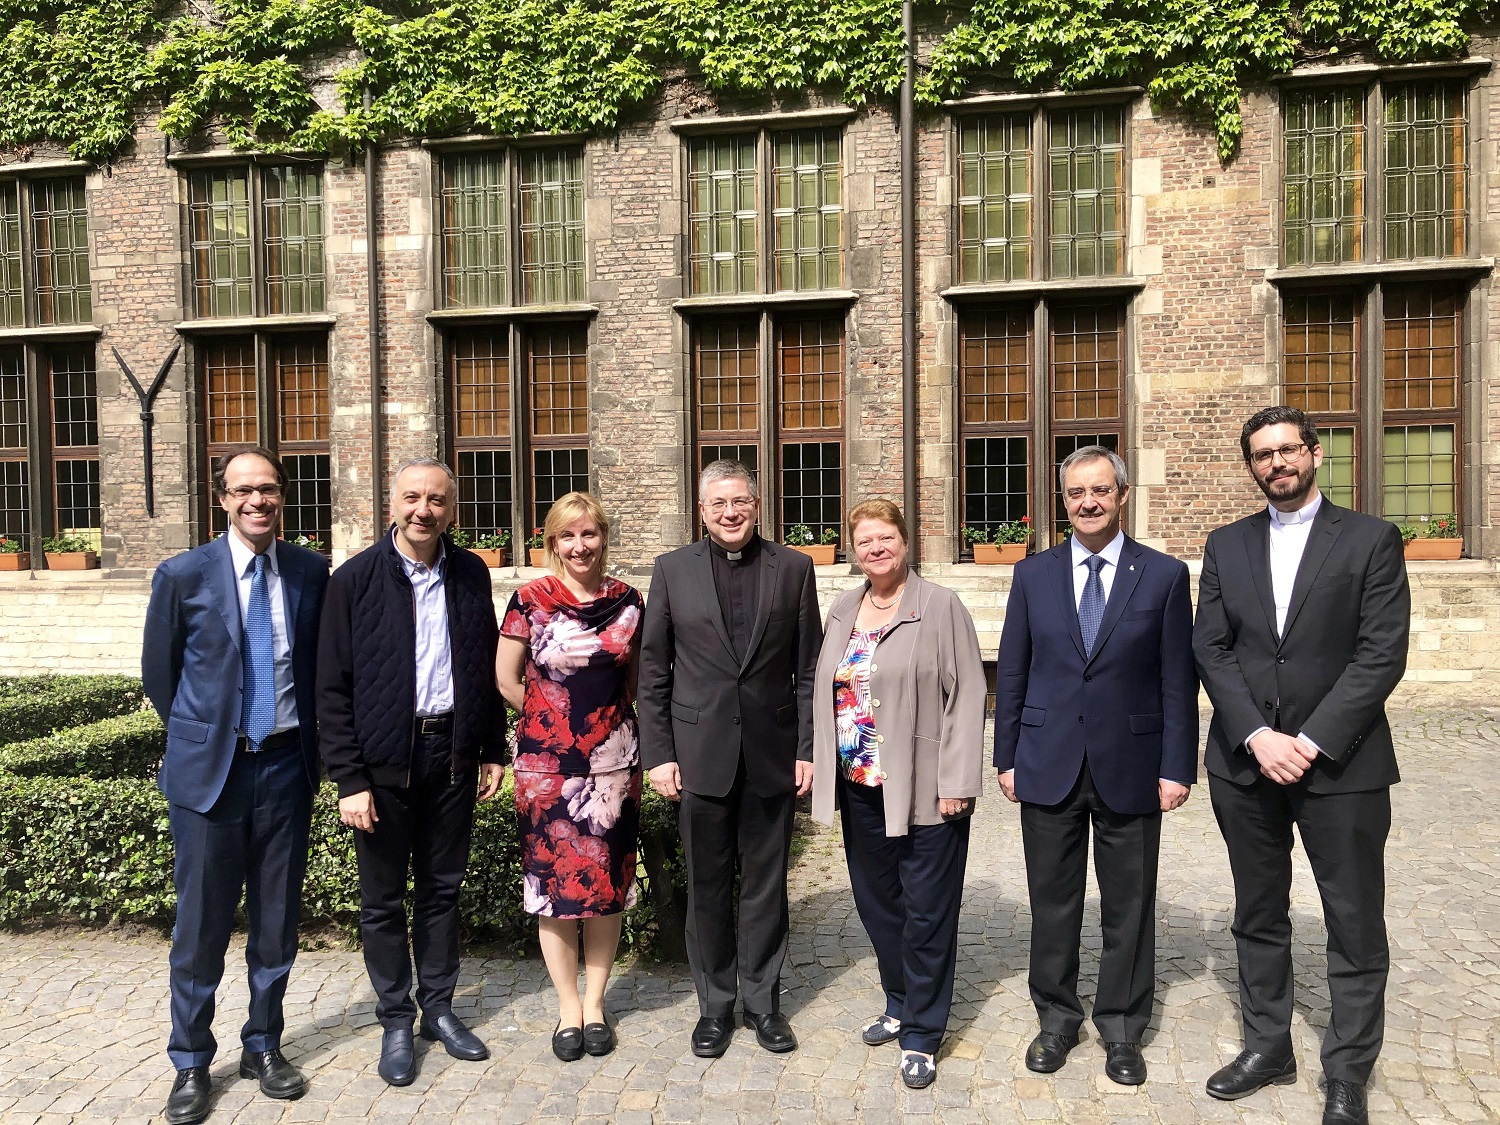 LvBS Founding Dean elected to Board of Directors of the Federation of European Catholic Universities